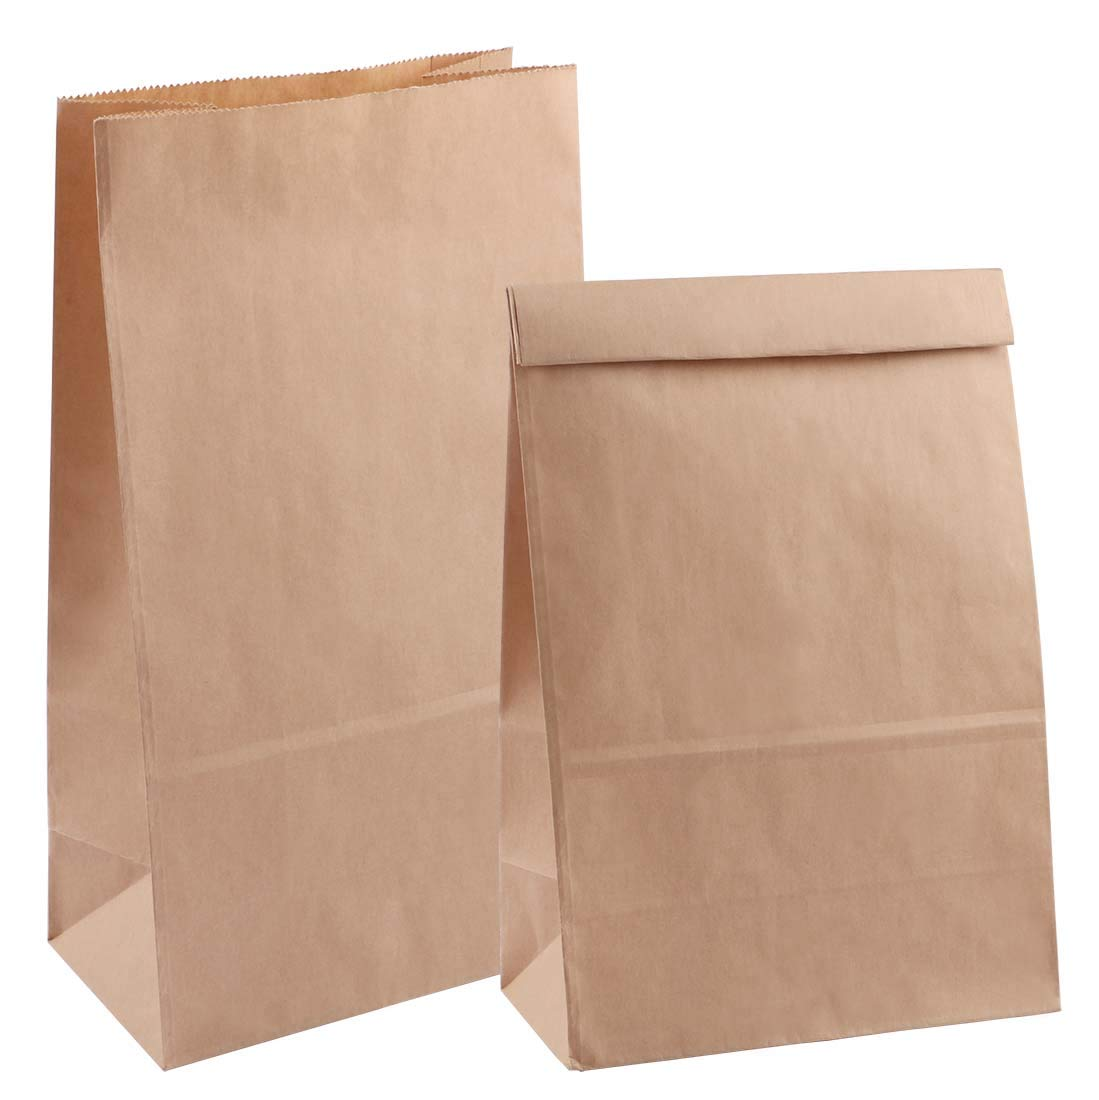 Katkitchen 20-Piece Kraft Paper Lunch Grocery Bags Pouches, 12.5''x7''x4.3'' Take Out Containers Food Storage Bags for Lunch, Shopping, Retail and Merchandise